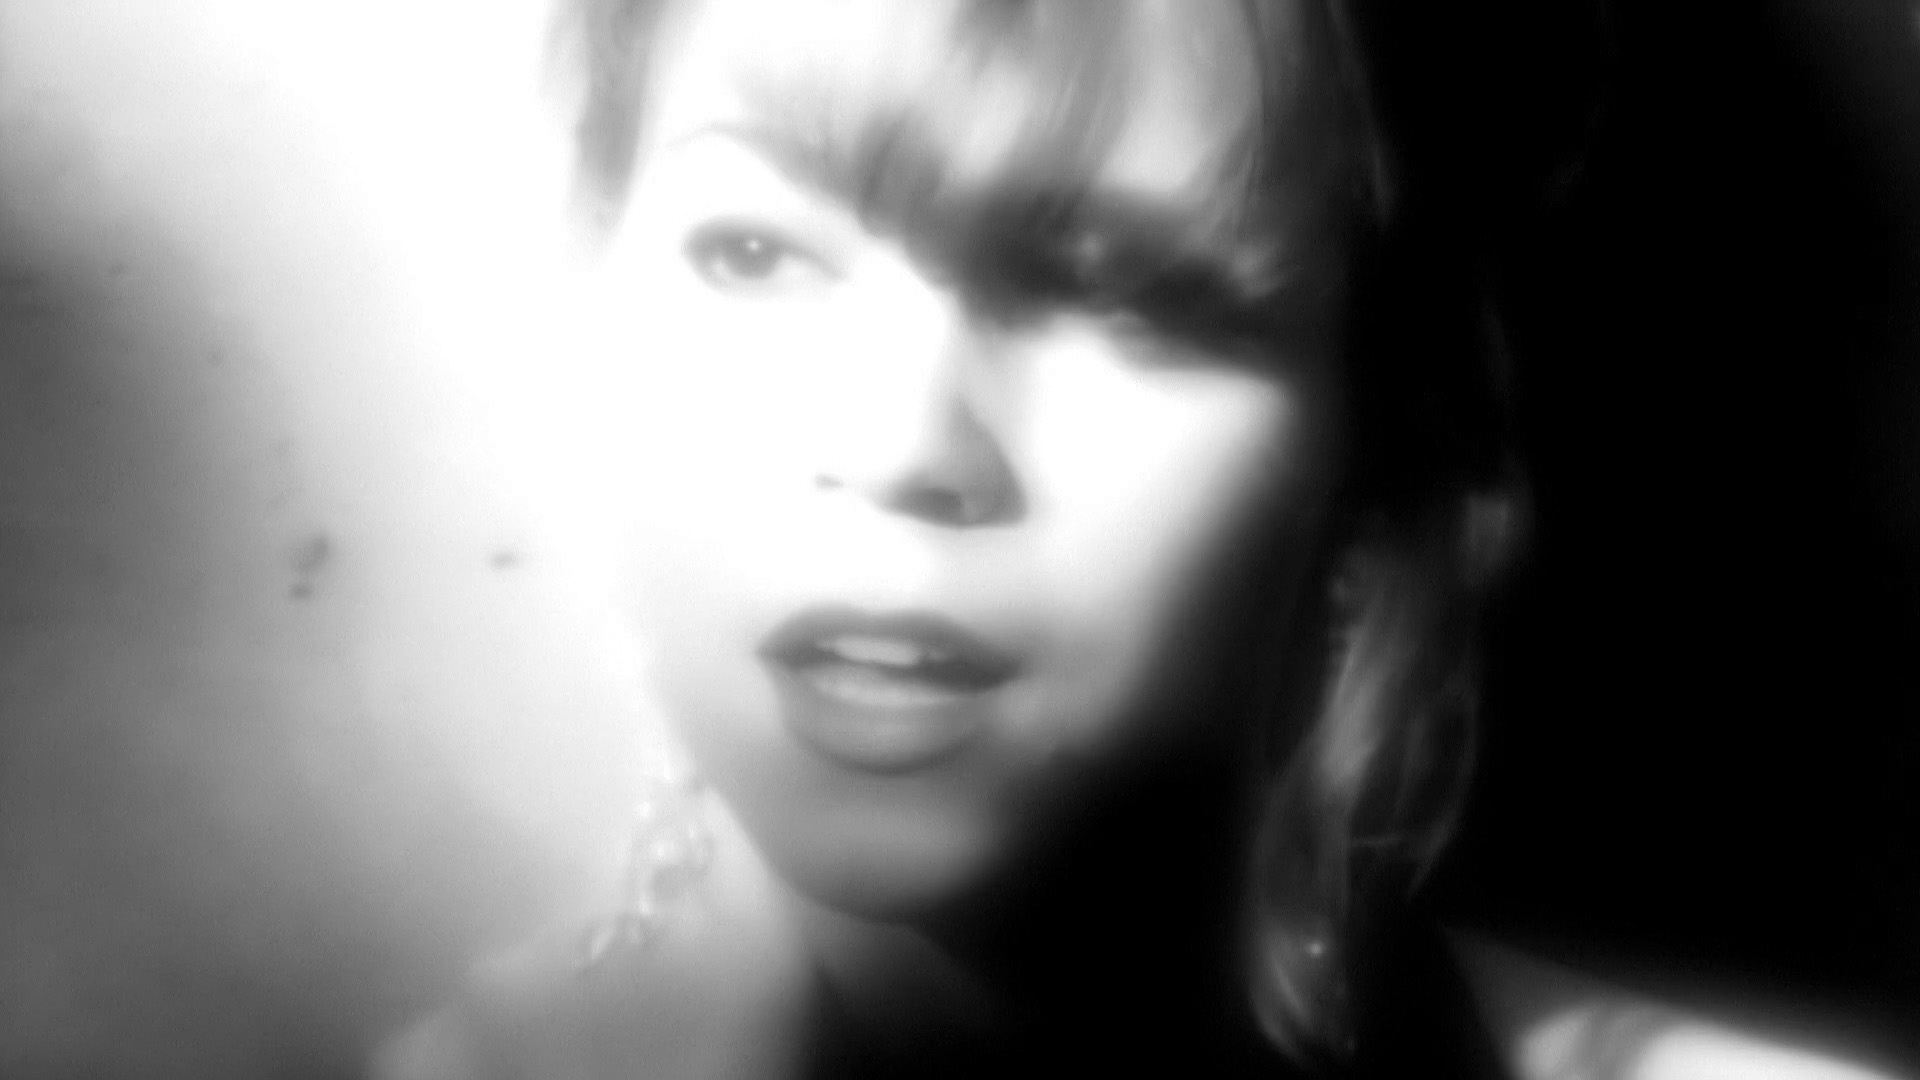 The Mariah Network : Gallery : Captures : Can't Let Go Mariah Carey Video